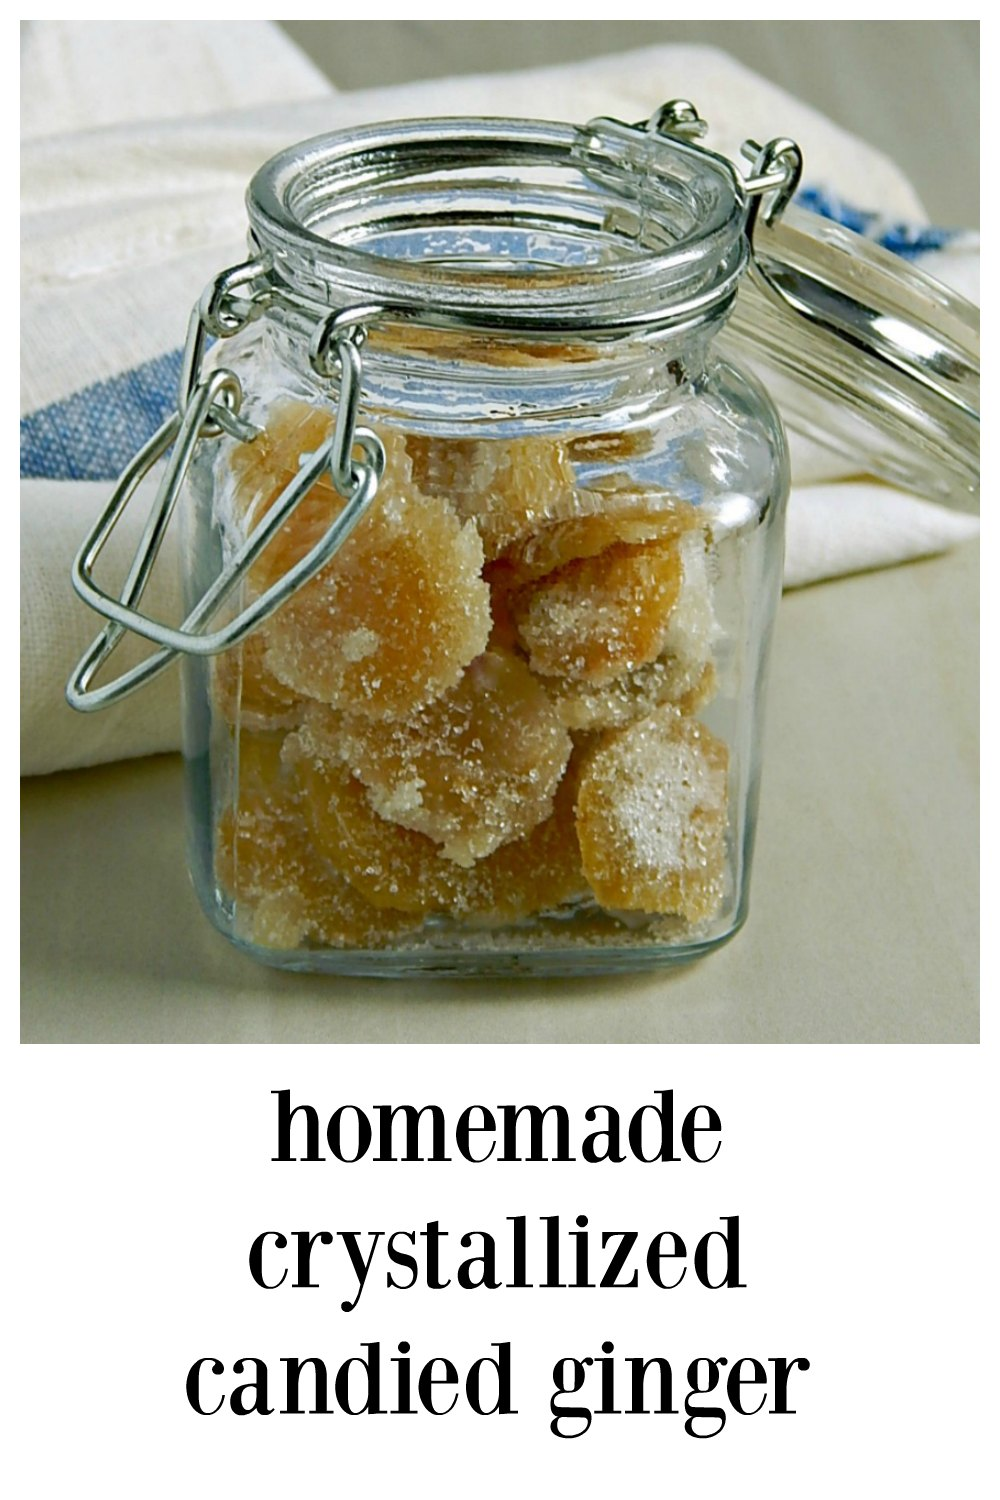 Homemade Crystallized Candied Ginger is so easy and blows away any commercial product! Take the plunge and just make it. No thermometer needed for this easy recipe and all the hints and helps explained. Perfect for gifts. Hint: Dip half in dark chocolate!! #CandiedGinger #HomemadeCandiedGinger #HomemadeCrystallizedGinger